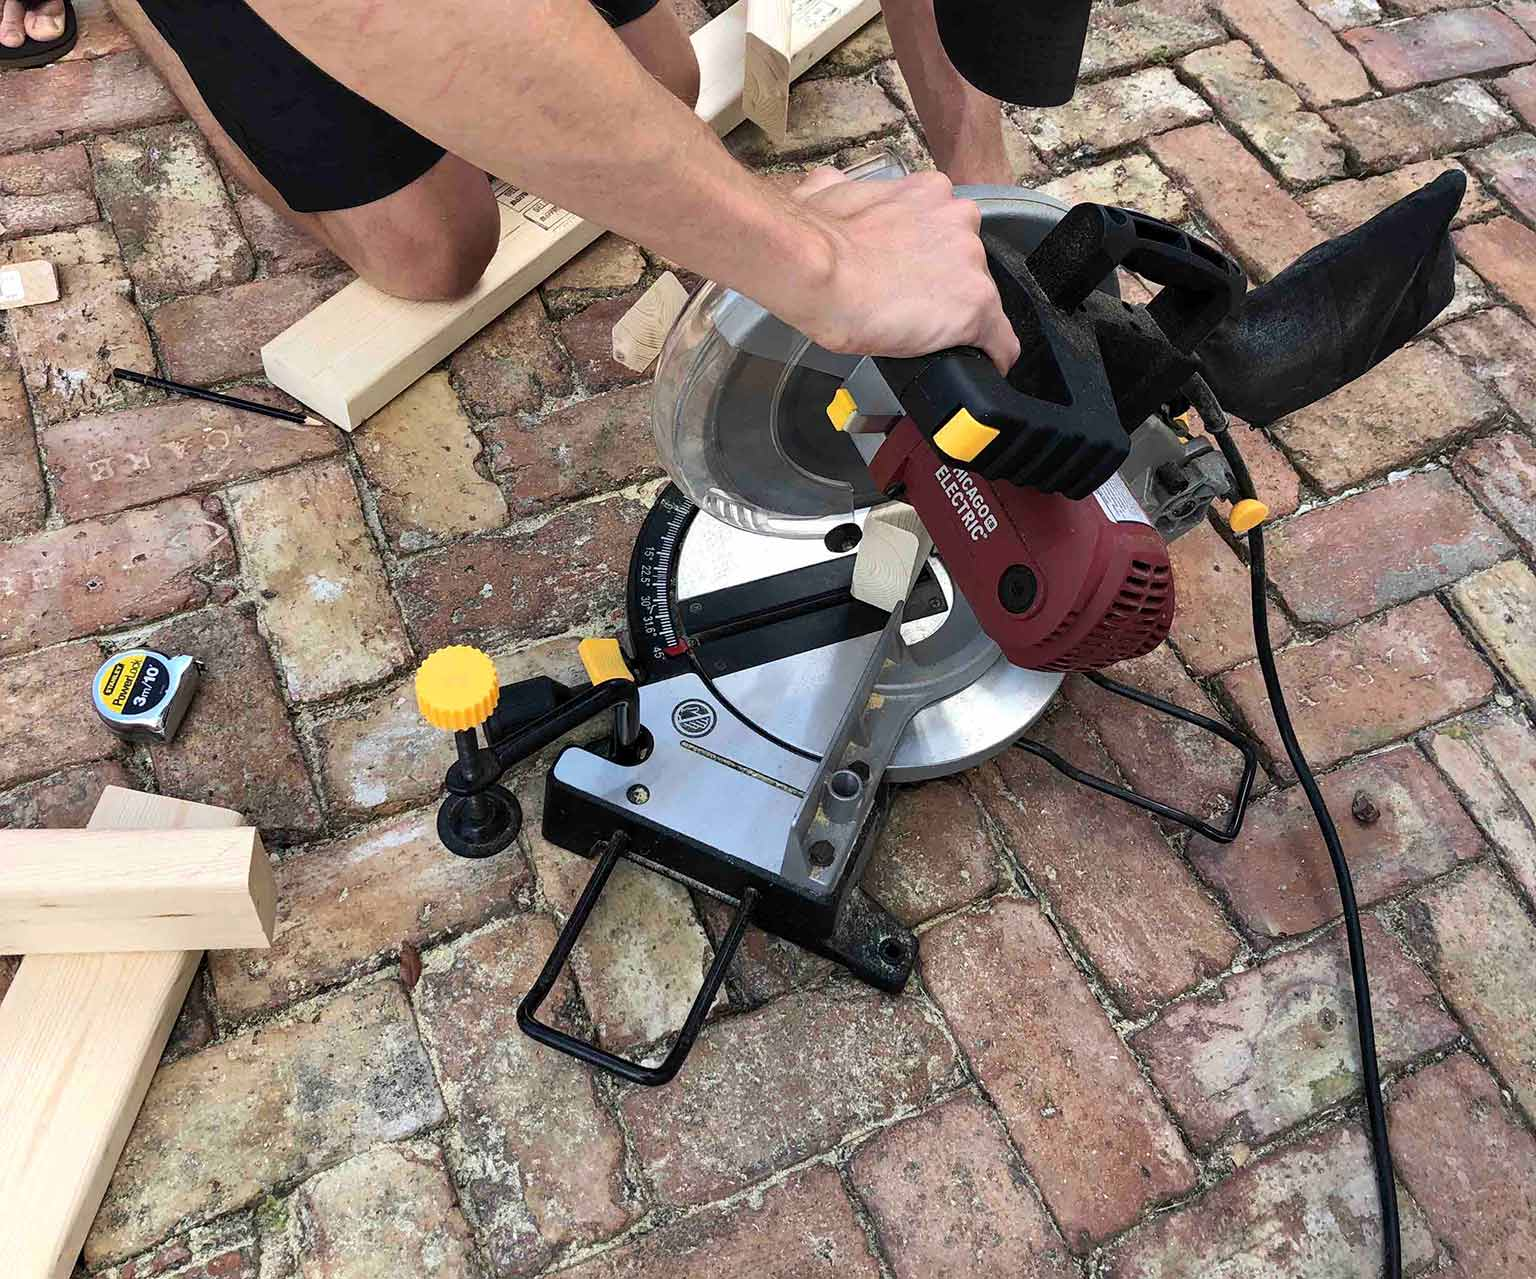 using a miter saw to build a frame